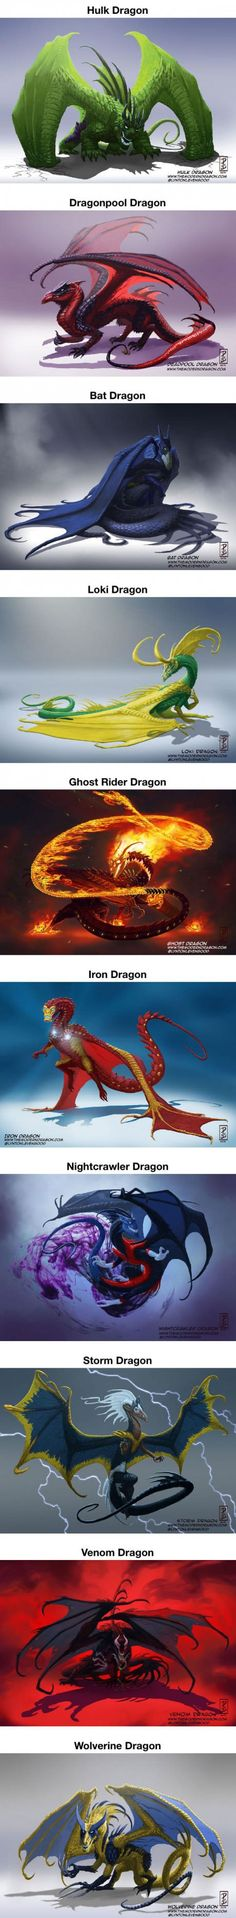 Re-Imagined Popular Comic Characters As Dragons